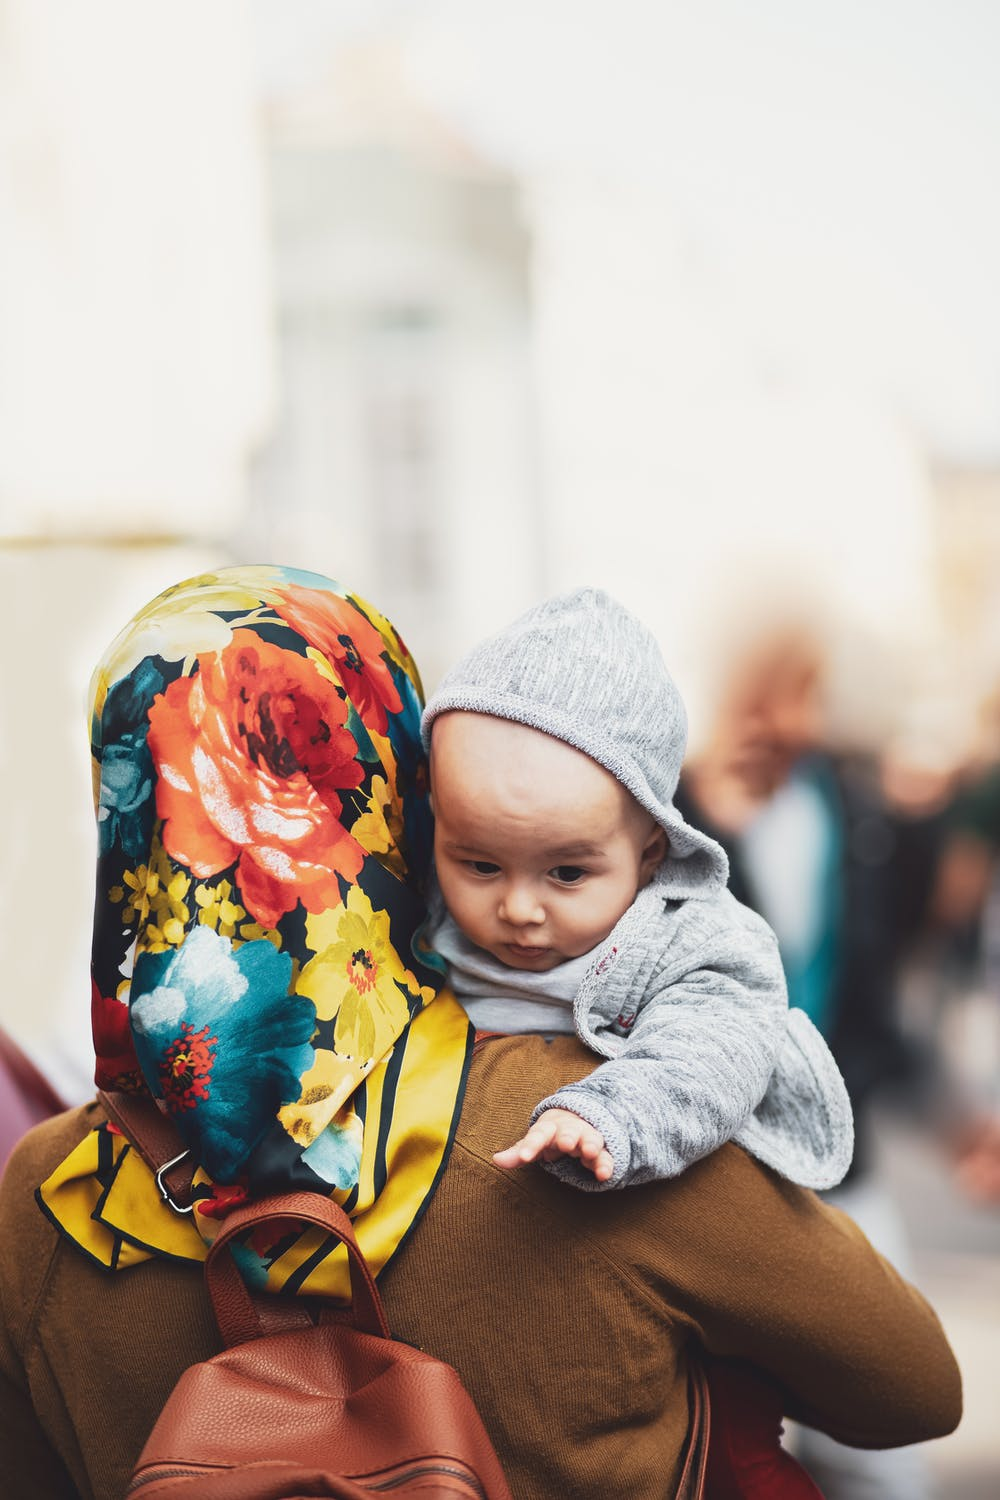 Woman carrying a baby | Photo: Pexels